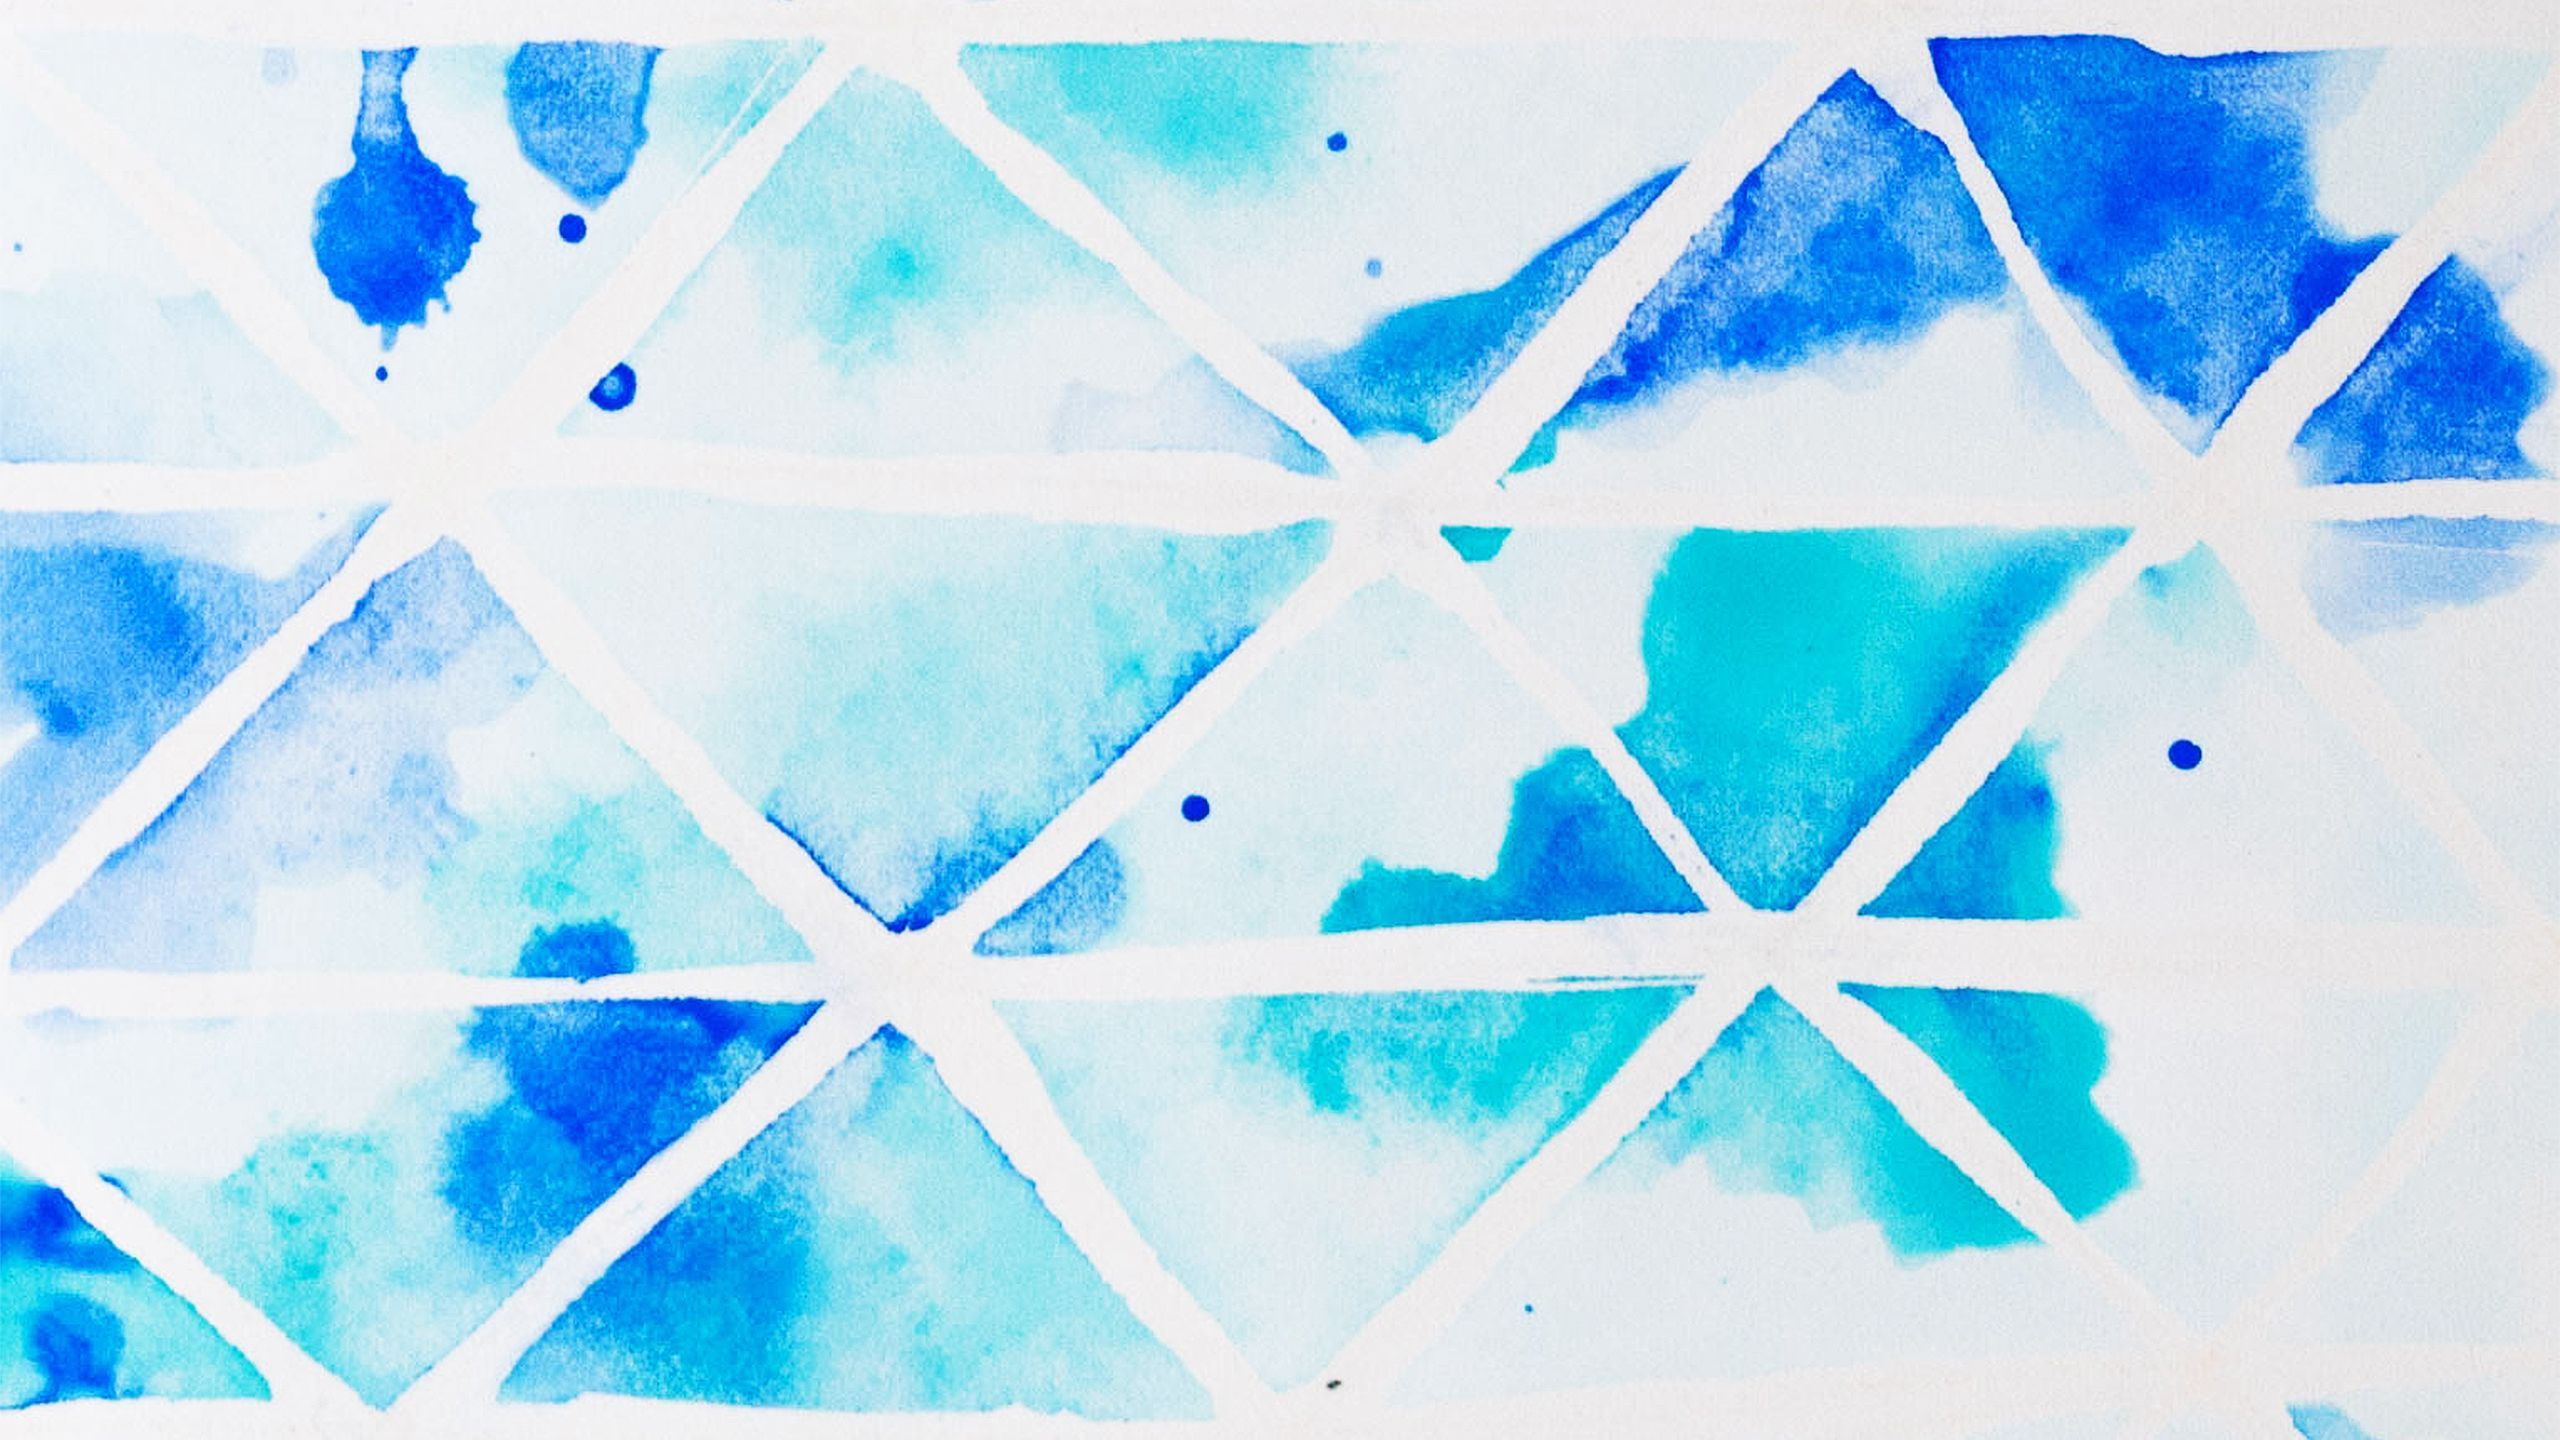 Blue Watercolor Wallpaper Blue Watercolor Wallpaper